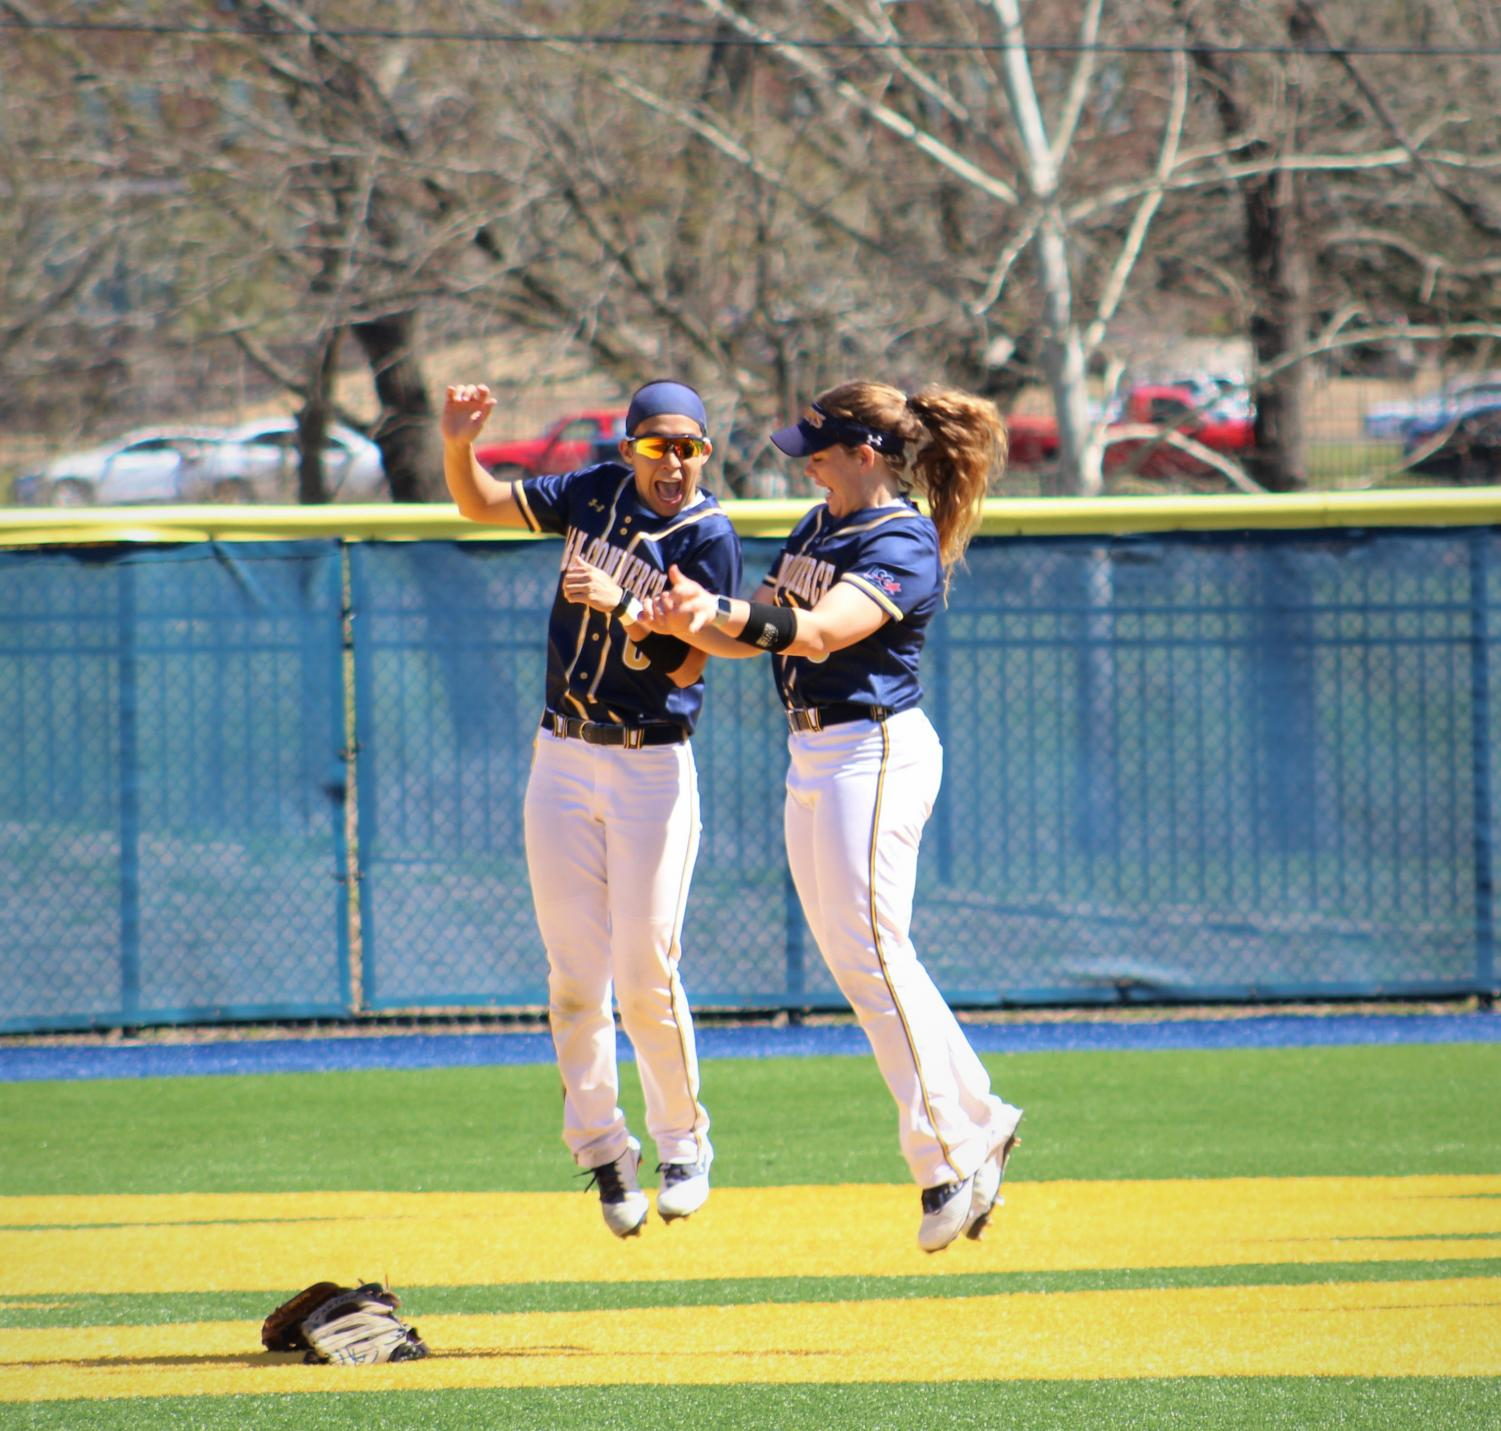 Nunez+and+Kilcrease+jump+in+the+outfield+%7C+Joseph+Miller